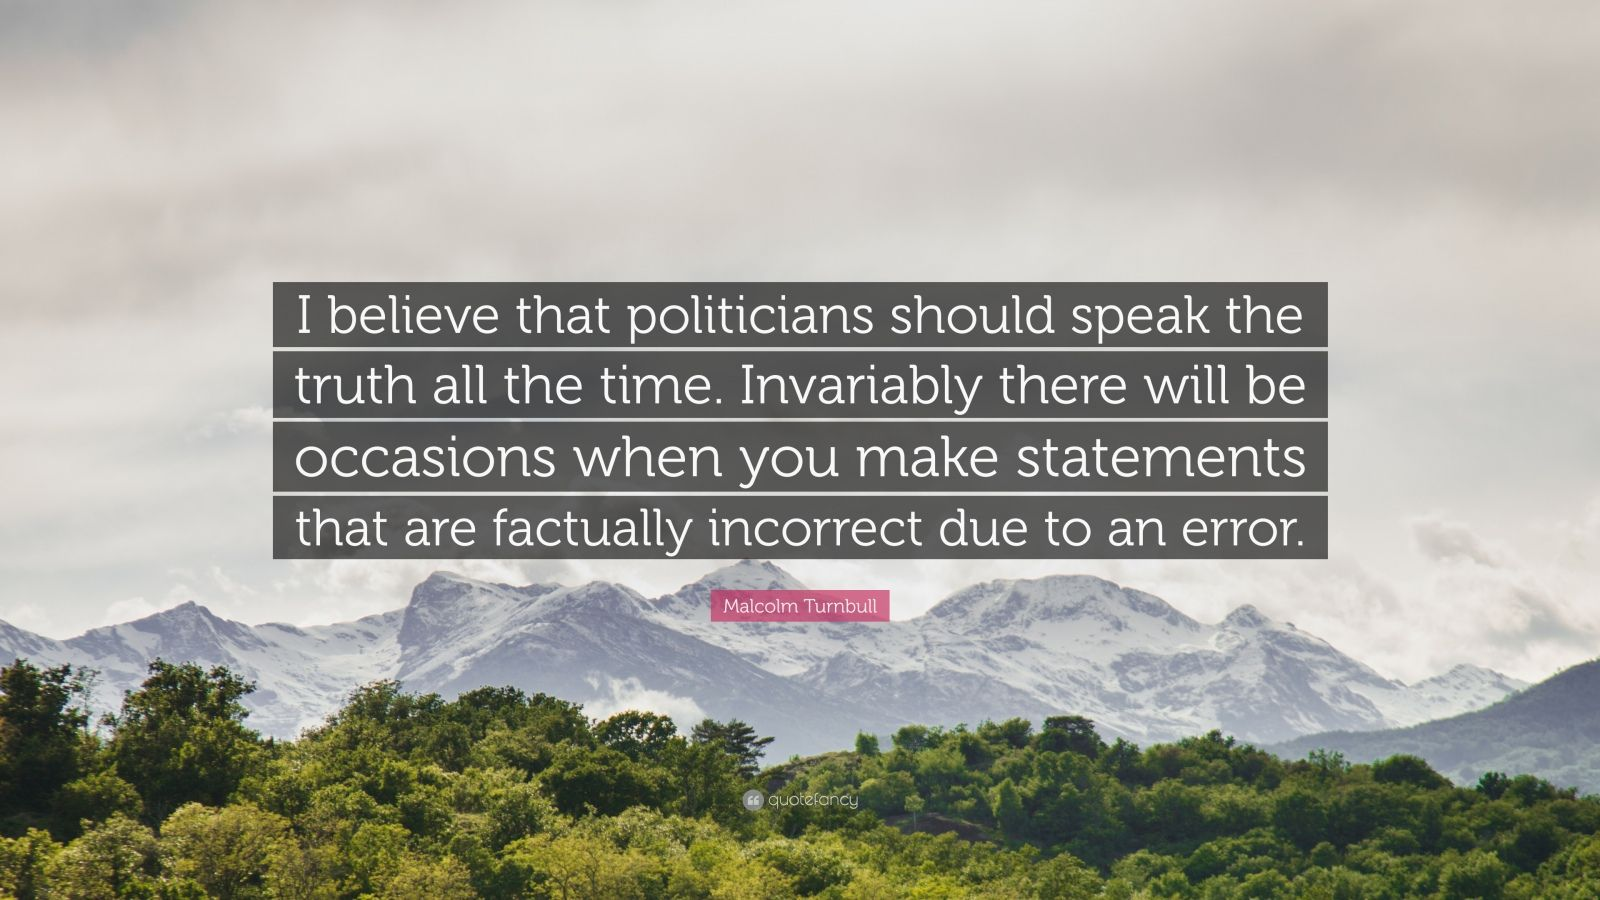 """Malcolm Turnbull Quote: """"I believe that politicians should speak the truth all the time. Invariably there will be occasions when you make statements that are factually incorrect due to an error."""""""